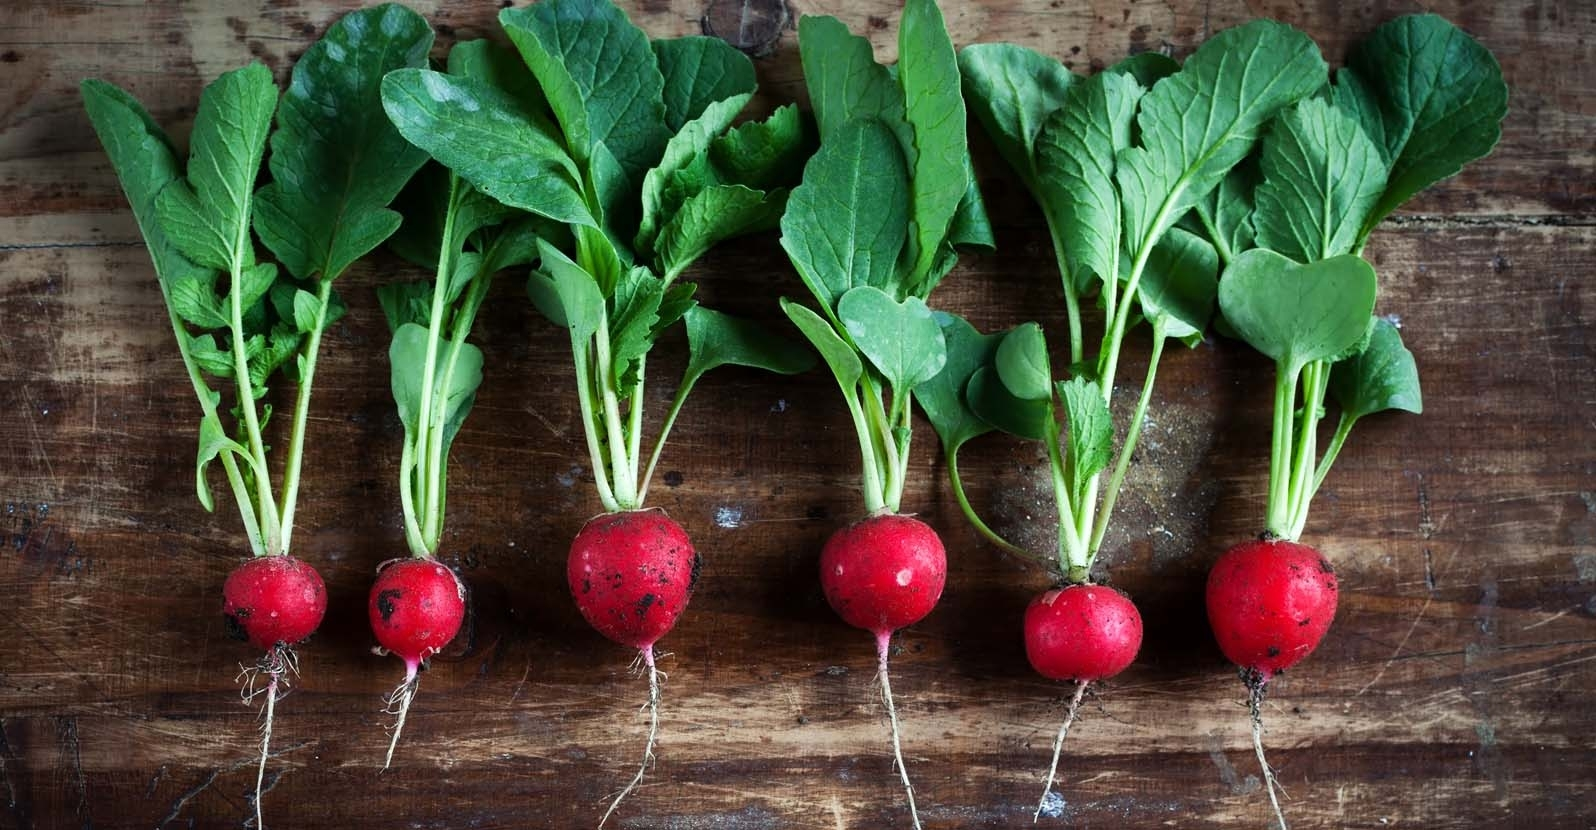 5 Reasons to Grow Your Own Radishes